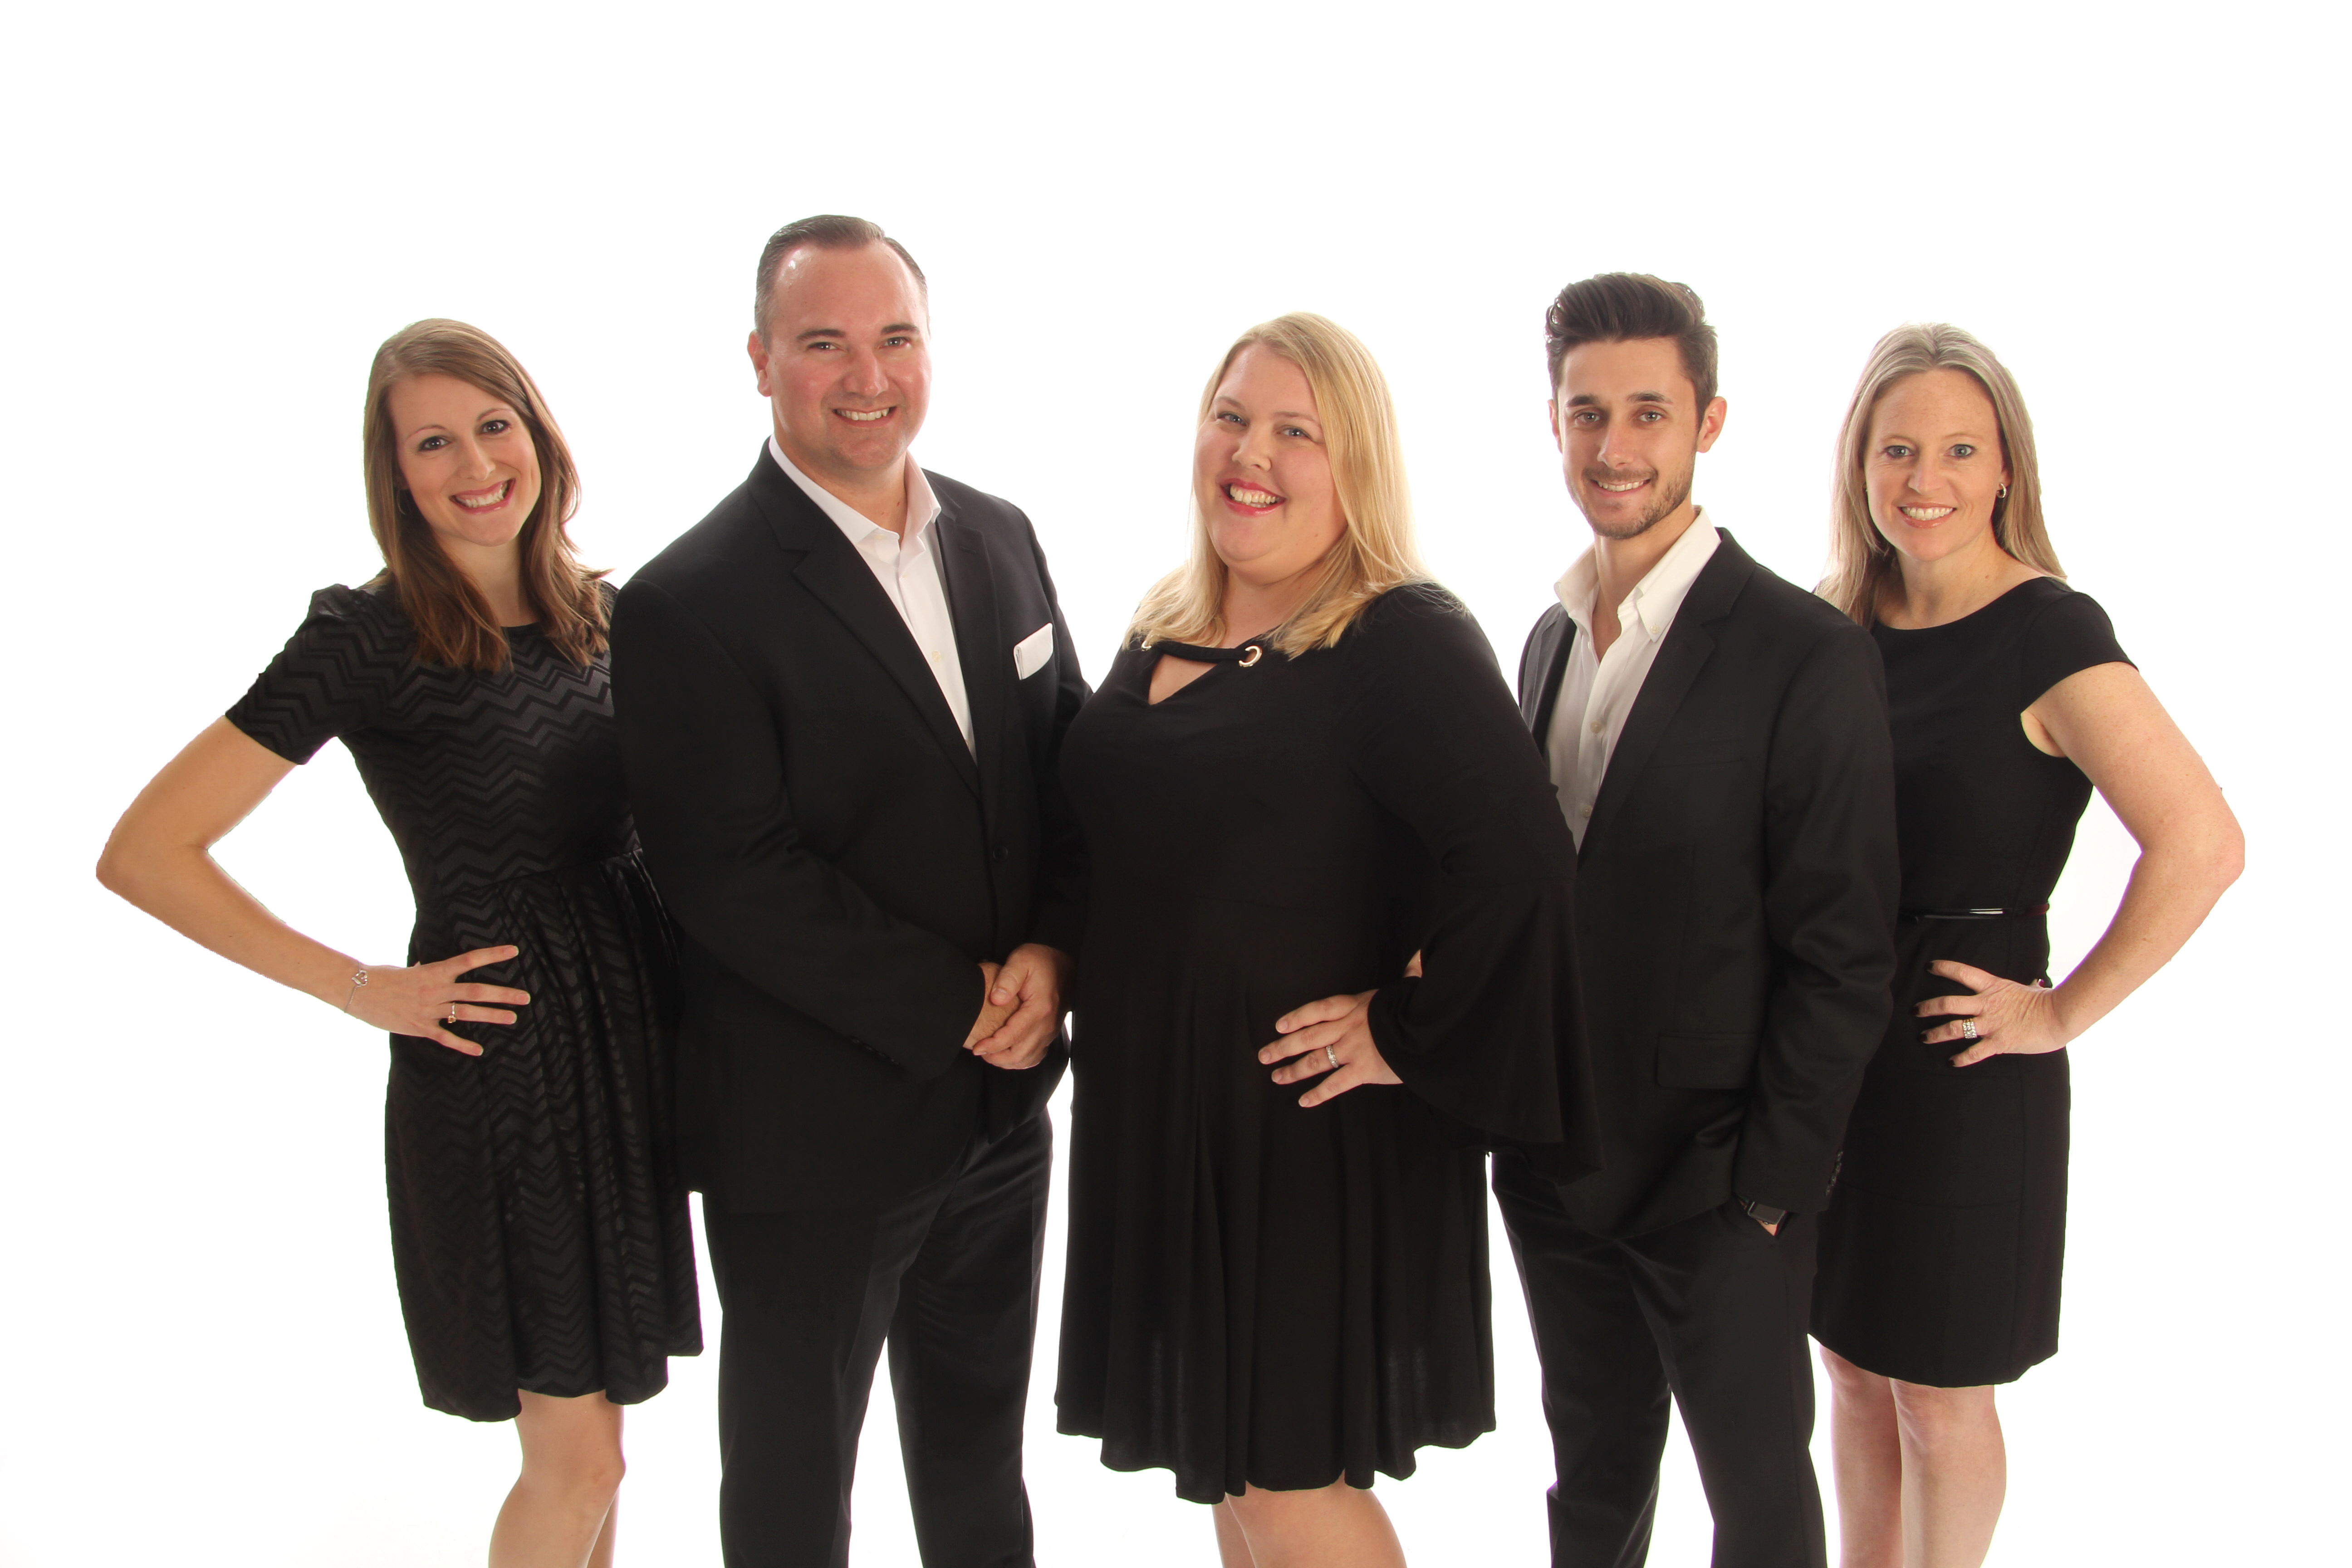 Ryan Jennings Group at Keller Williams Realty Wellington